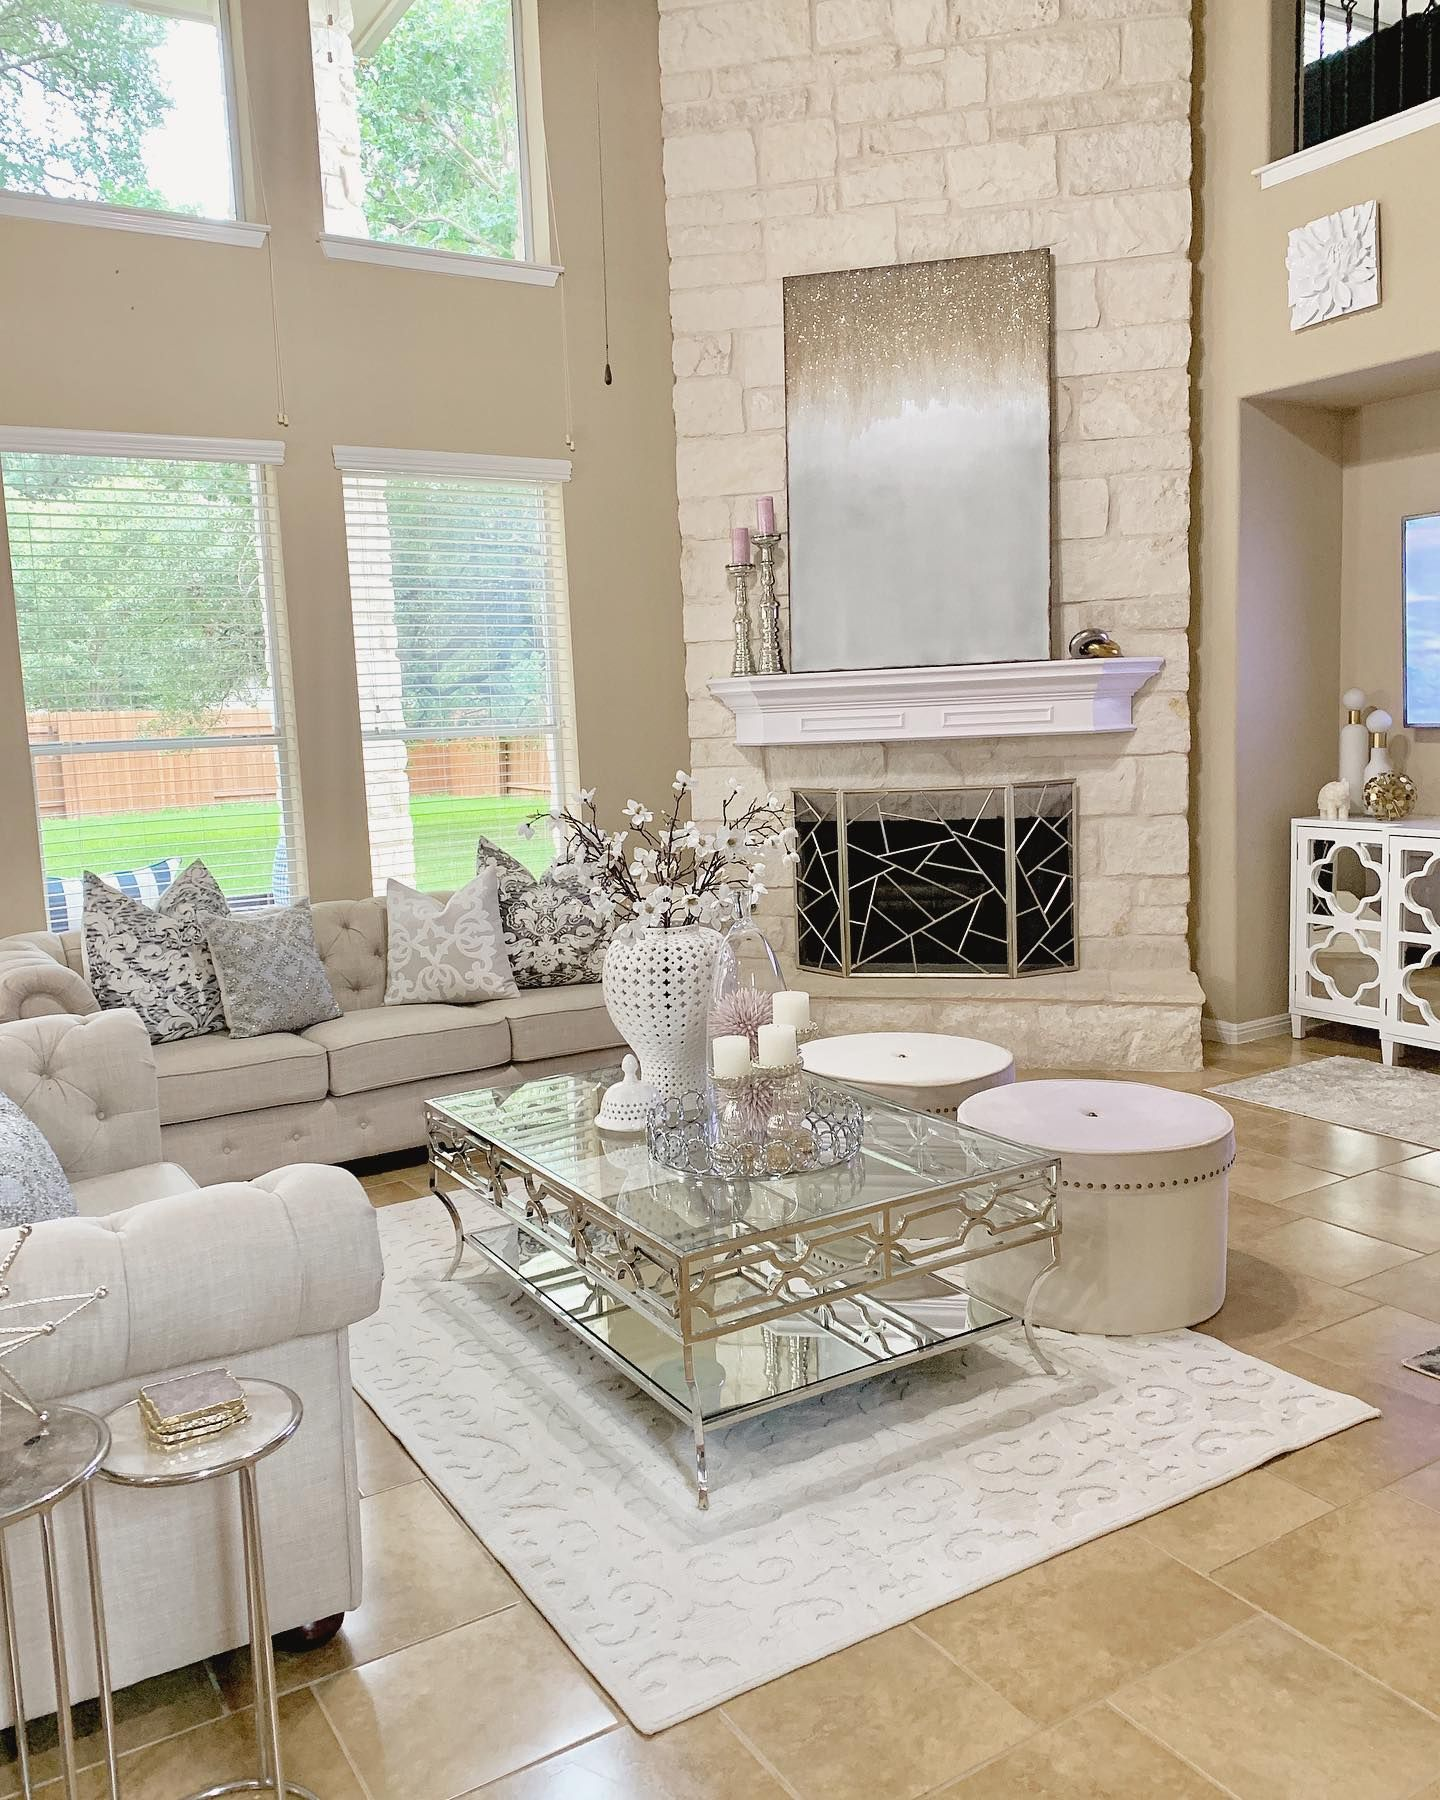 Elegant Living Room Decorating Ideas: Hello Insta Friends! Got Inspired Today And Moved Around